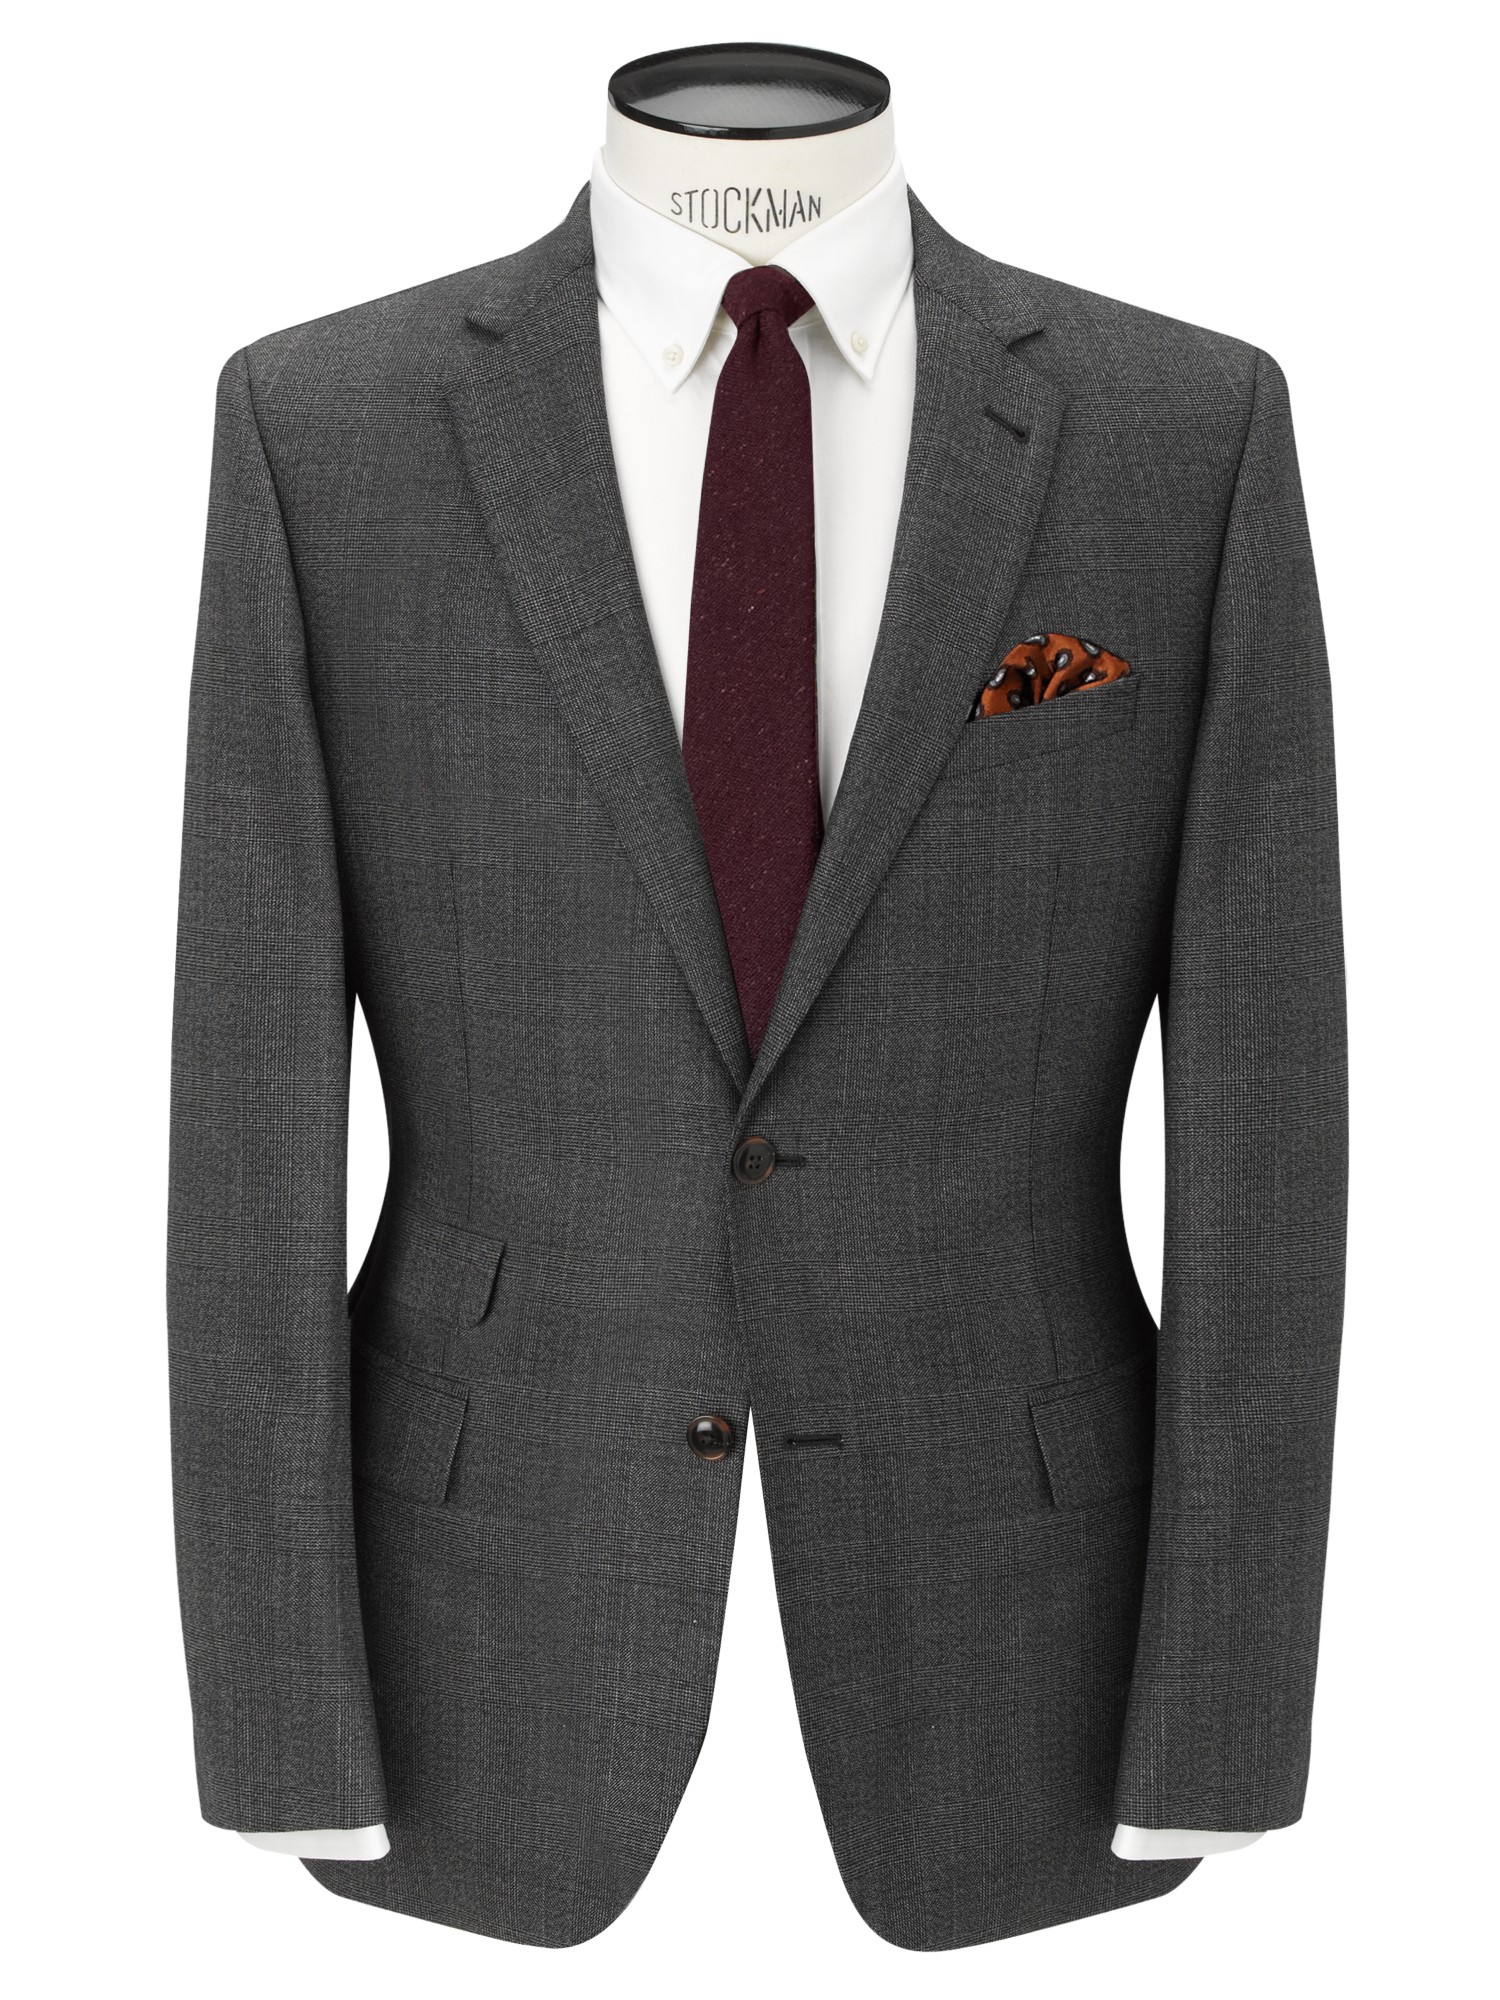 John Lewis Wool Tailored Chepstow Check Single Breasted Suit Jacket in Grey (Grey) for Men